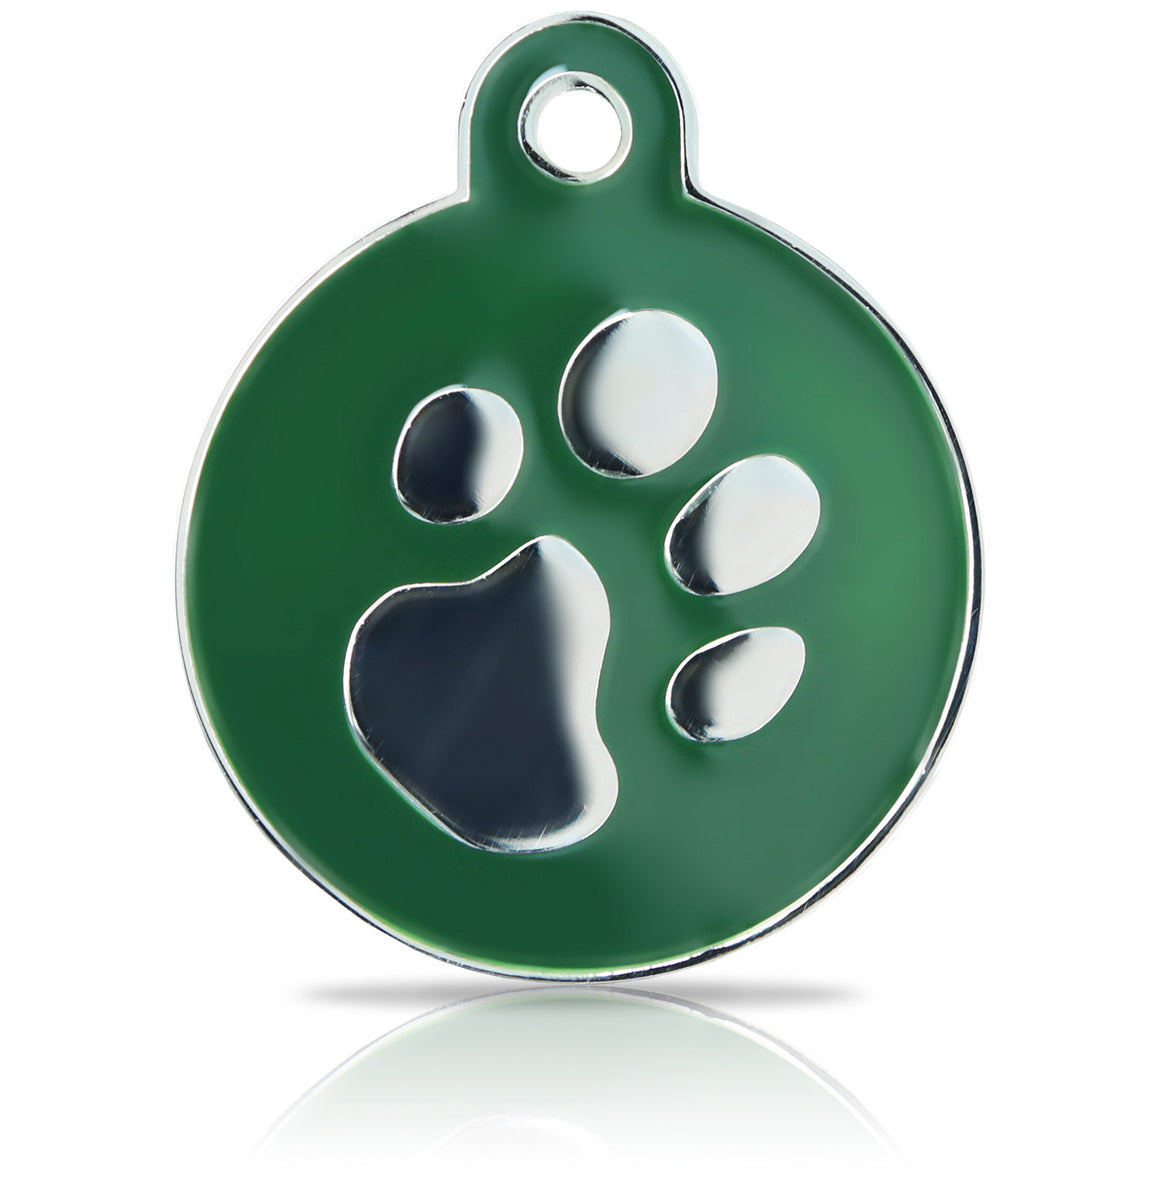 TaggIT Elegance Large Disc Green & Silver Pet Tag iMarc Tag